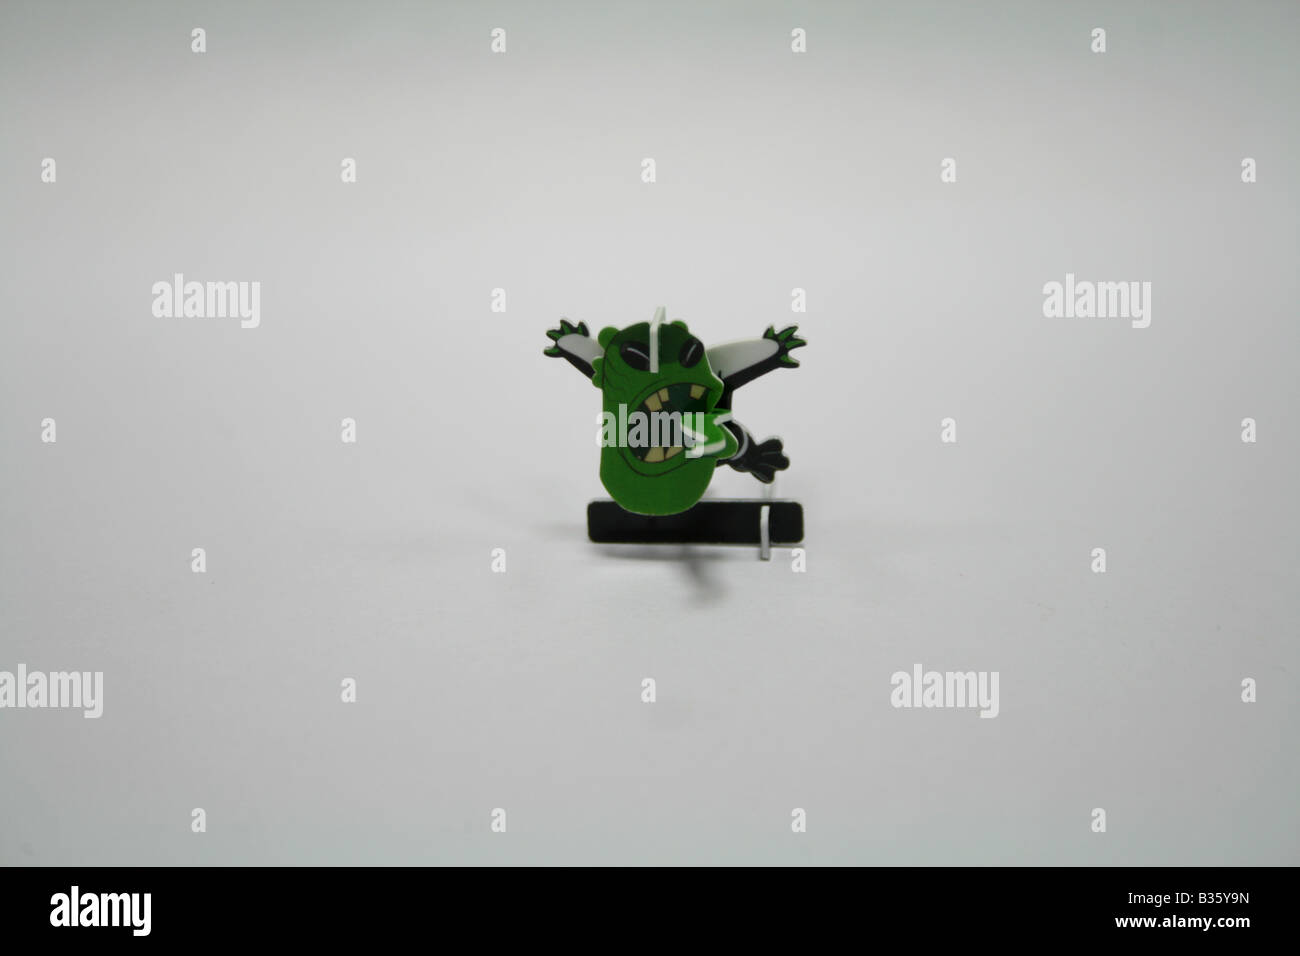 Fancy green colored desk top ghost item toy which can be kept in corporate office for stress relief and creativity - Stock Image